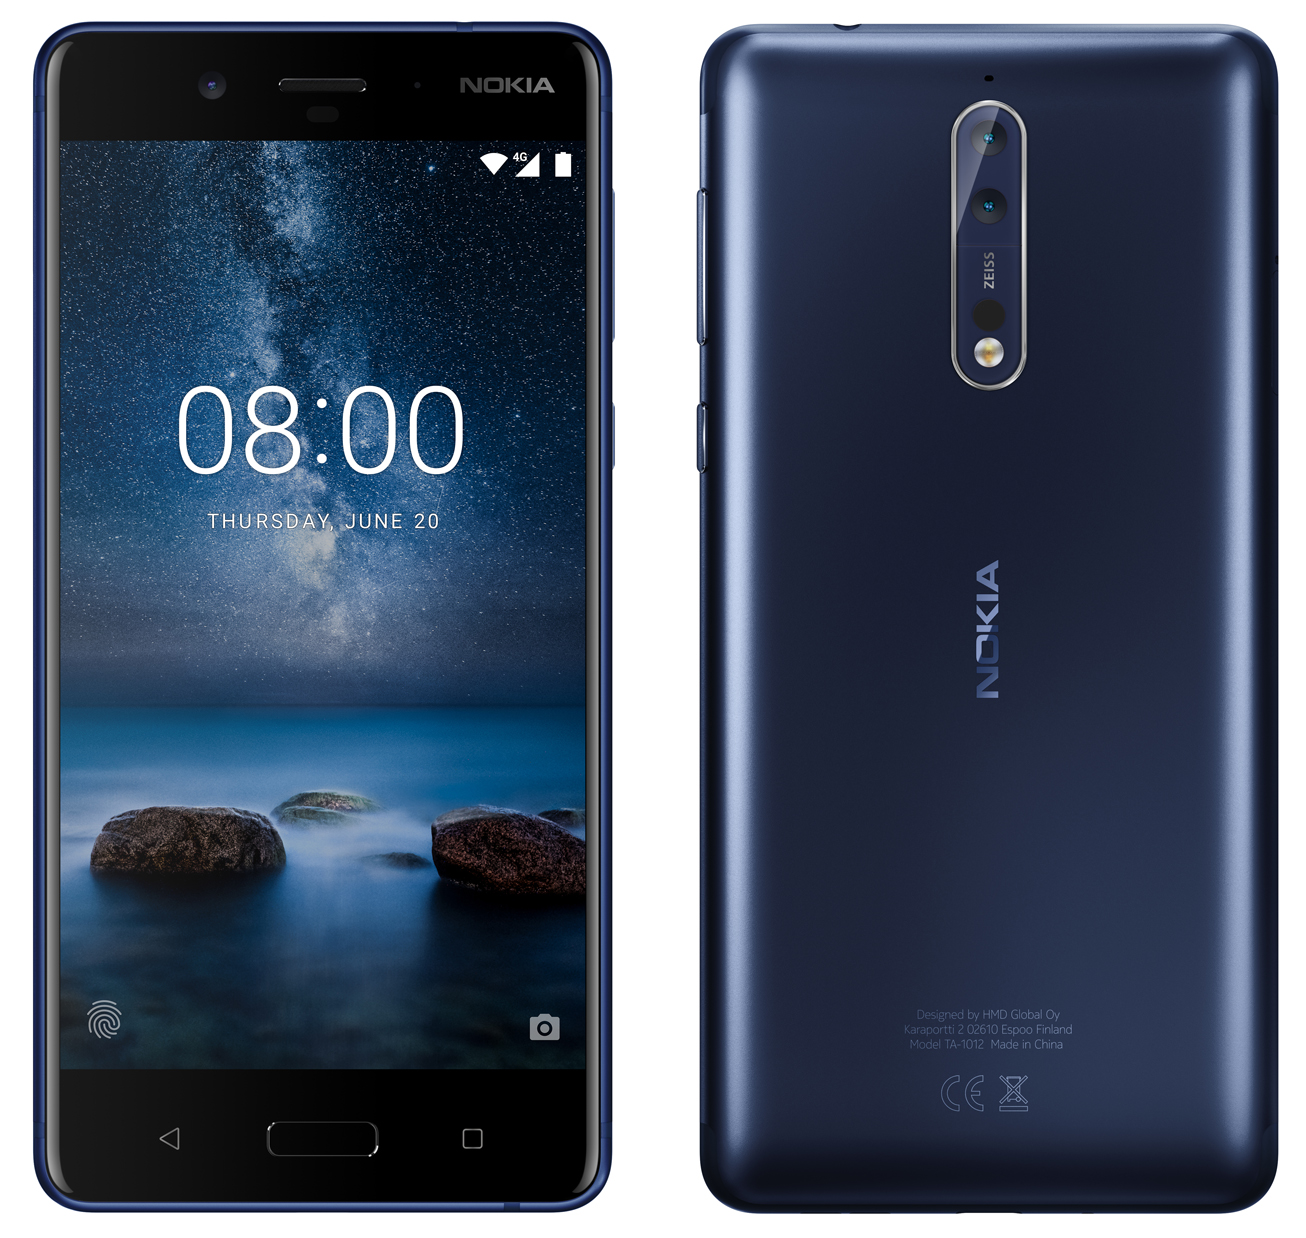 Nokia's 2018 smartphone lineup has every user covered